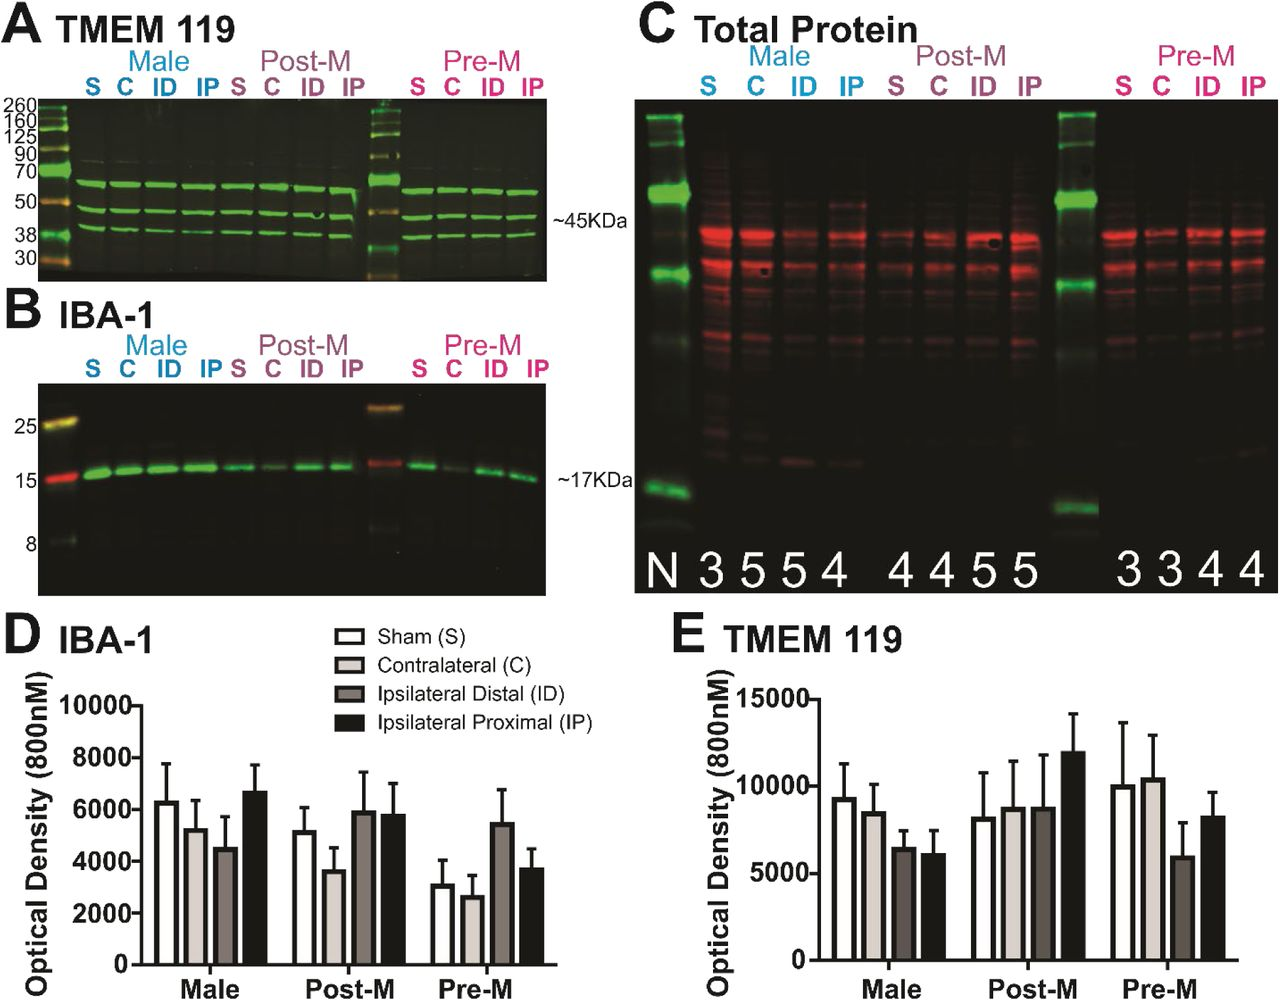 TMEM119 protein expression is unchanged in proximity to the infarcted tissue. Example blots of TMEM119 (A) , IBA1 (B) , and total protein (C) for regions and sex groups. D) Summary of IBA1 (D) and TMEM119 (E) data illustrate that these proteins remain relatively unchanged among brain regions and sex groups after ischemic stroke. Sample sizes range from 3-5 among sex groups and regions and are shown in (A) .